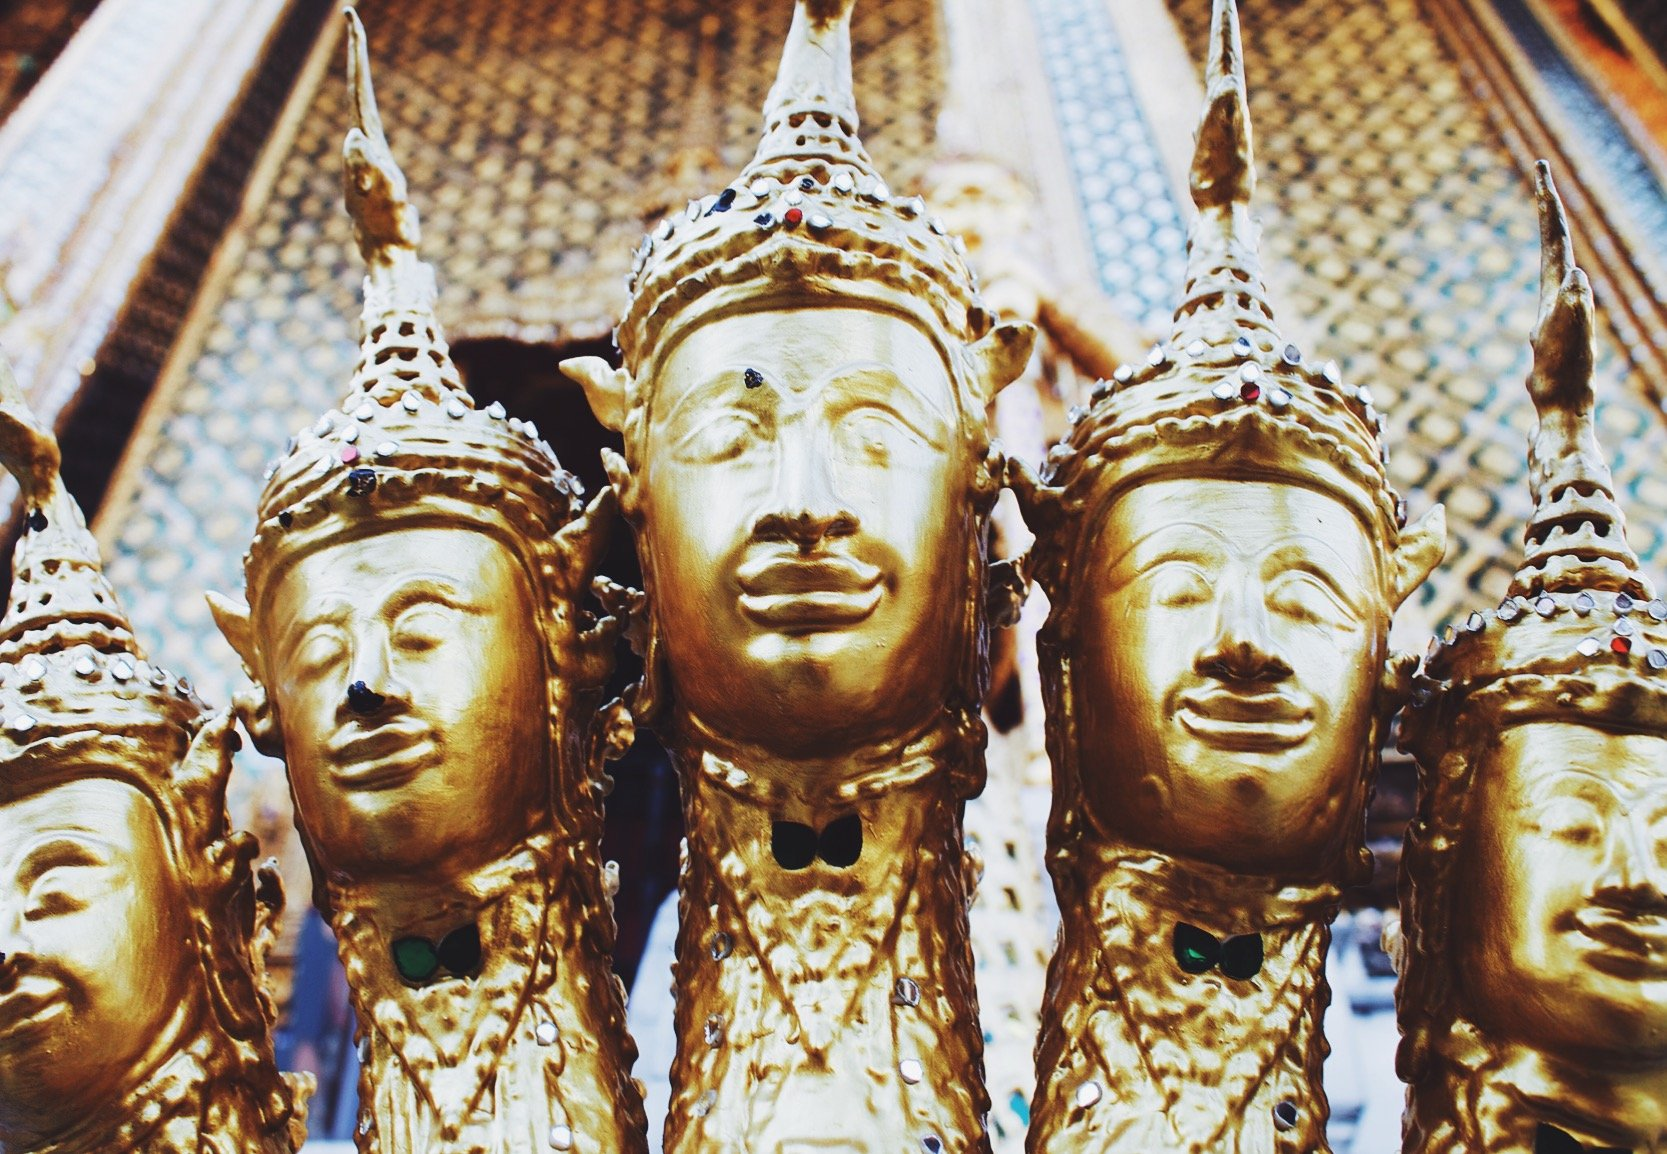 Wat Phra Kaew Guide Bangkok Thailand Cost | Earth Below Girls Female Travel & Lifestyle Blog